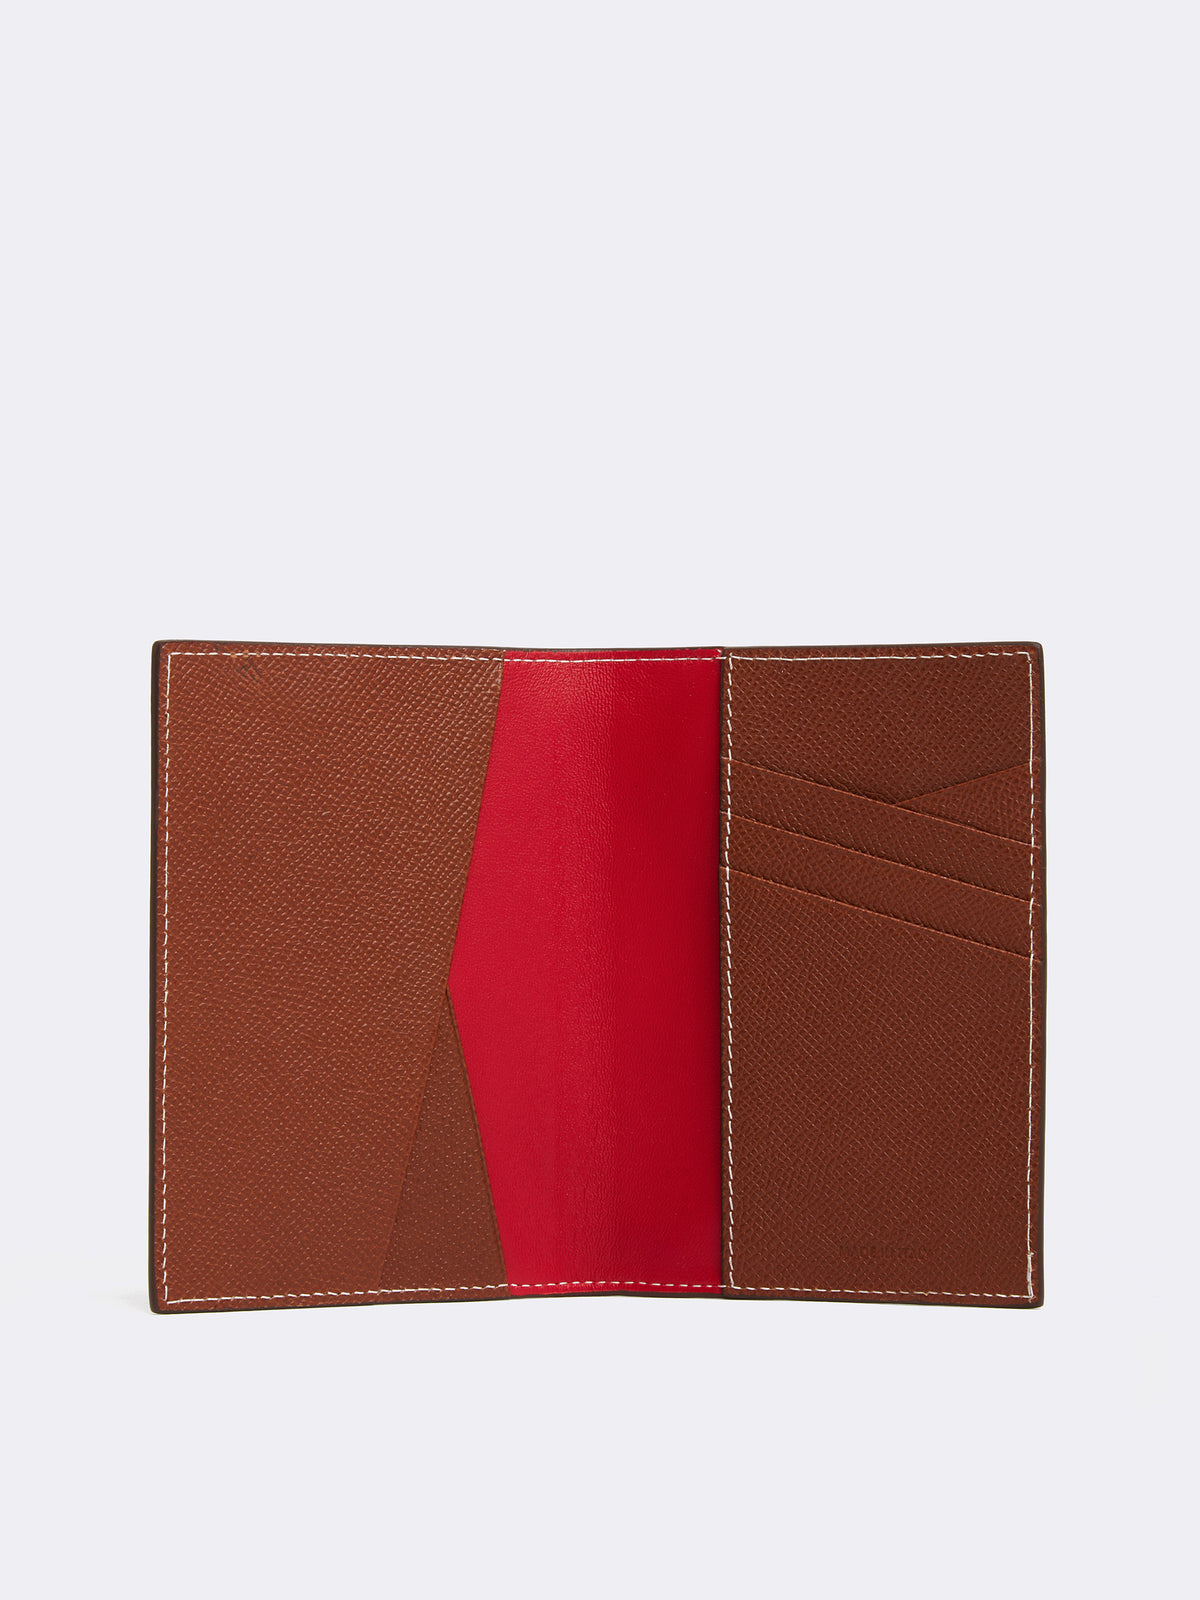 Mark Cross Leather Passport Cover Saffiano Acorn Back